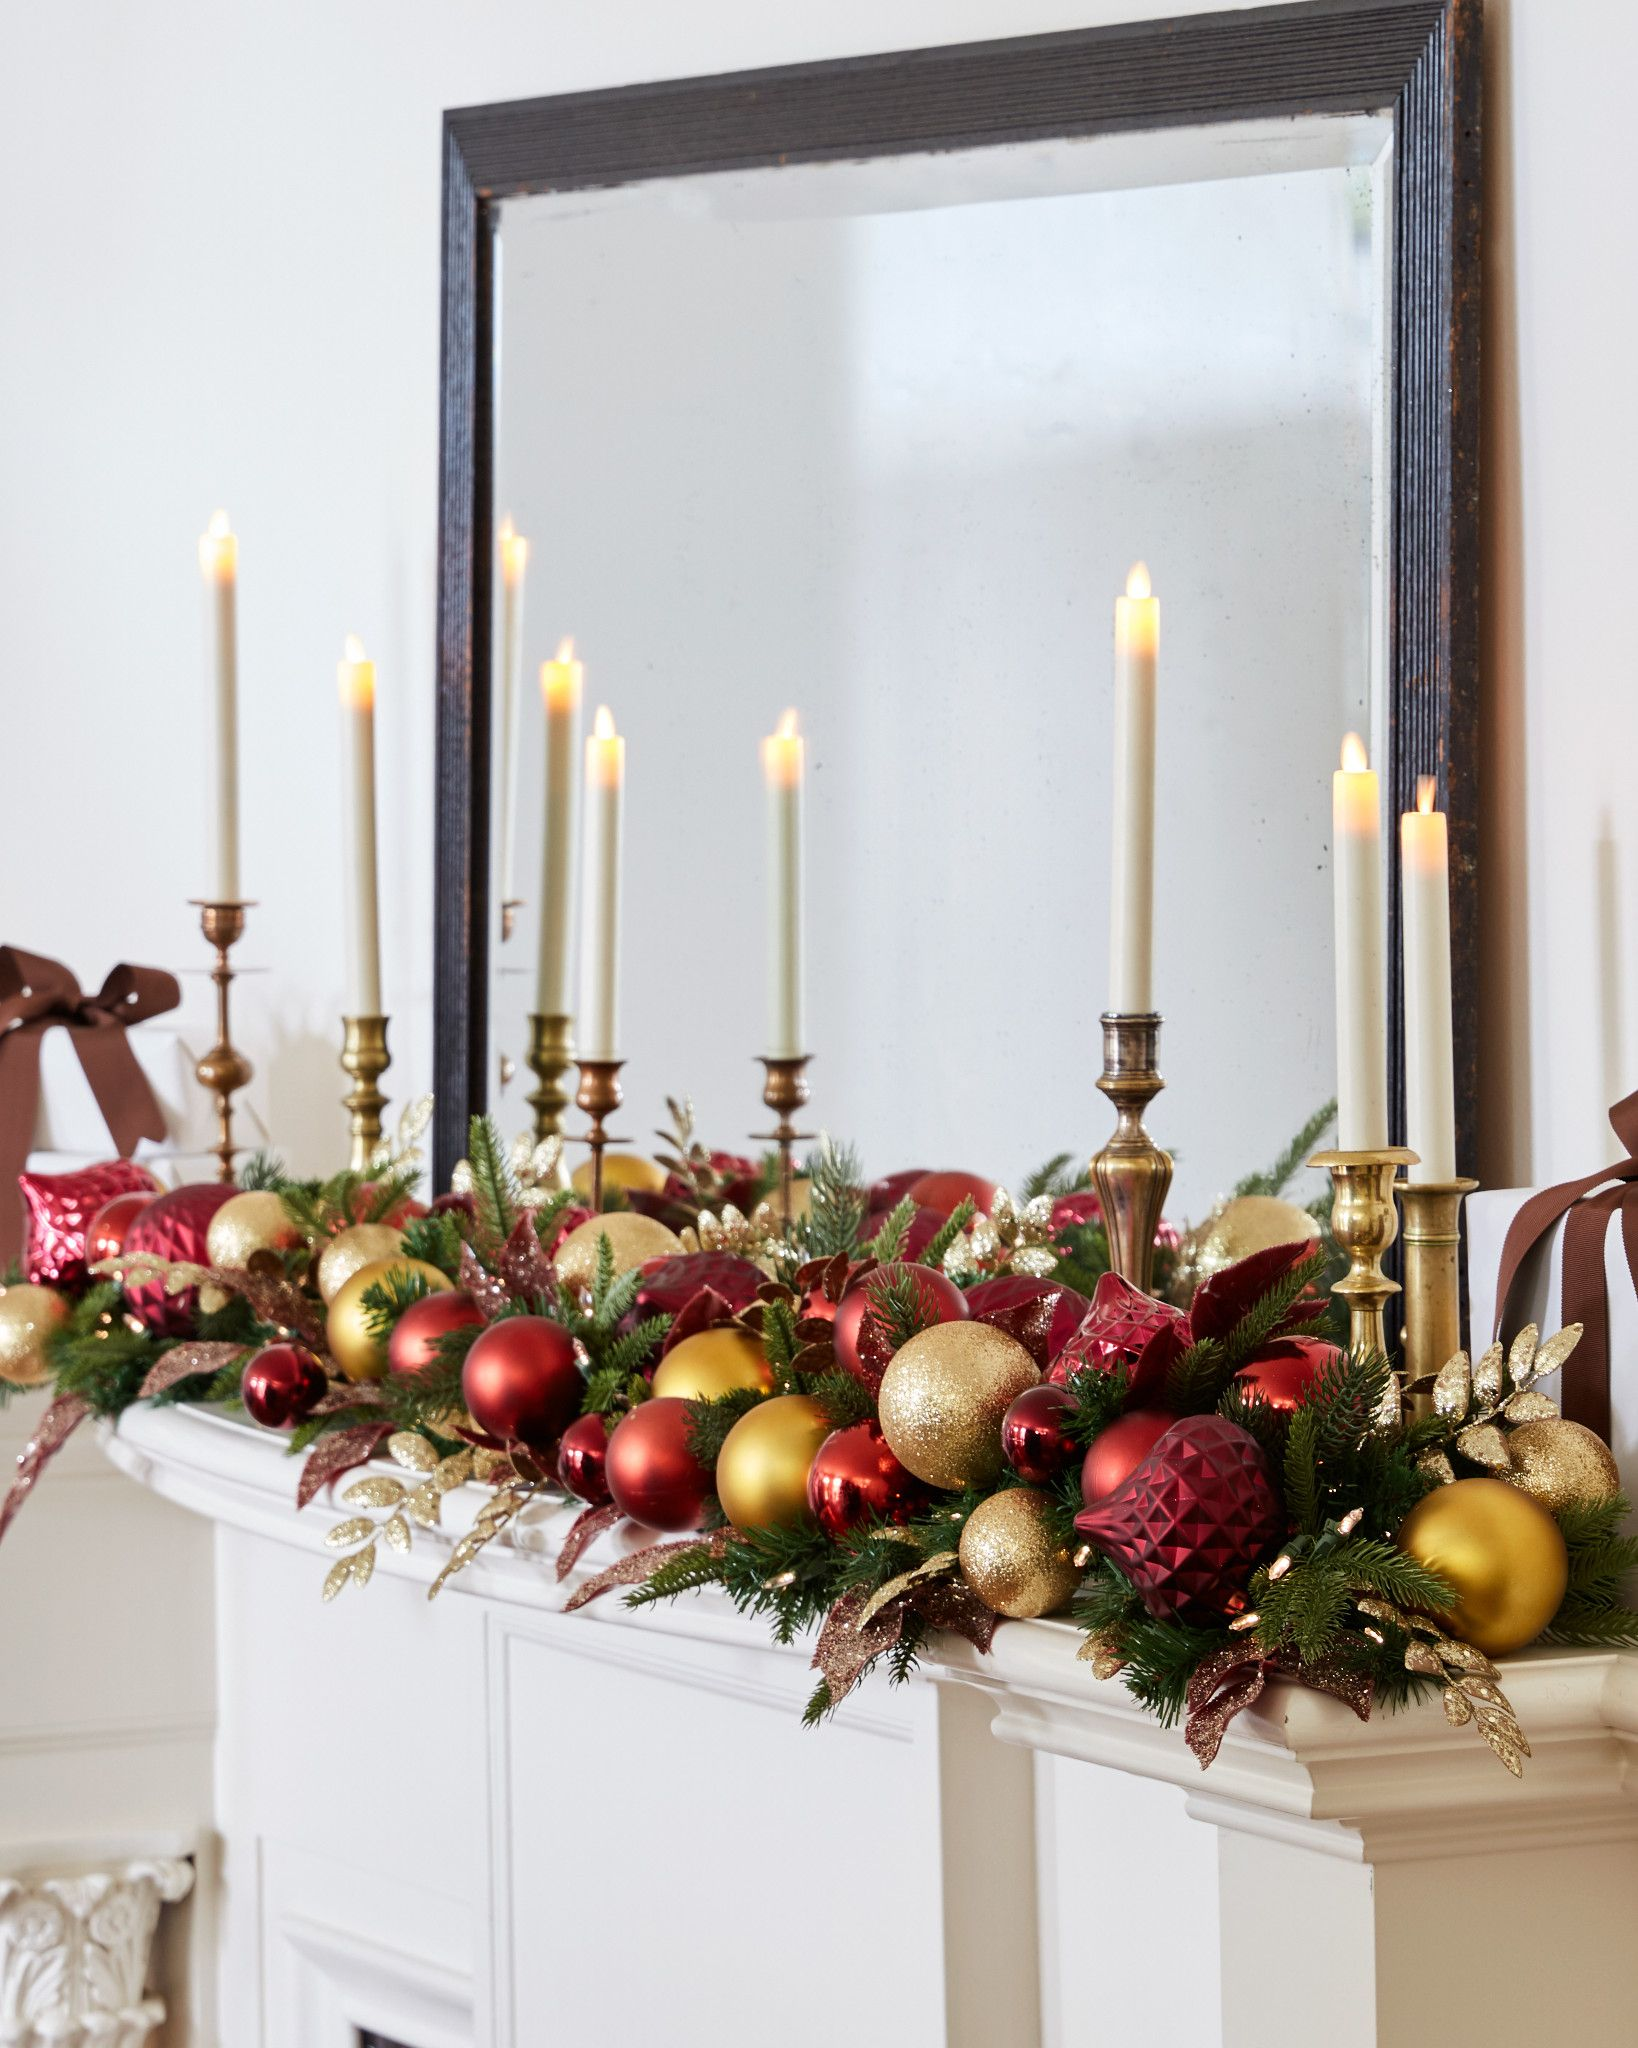 Holiday Grace Foliage in home by Balsam